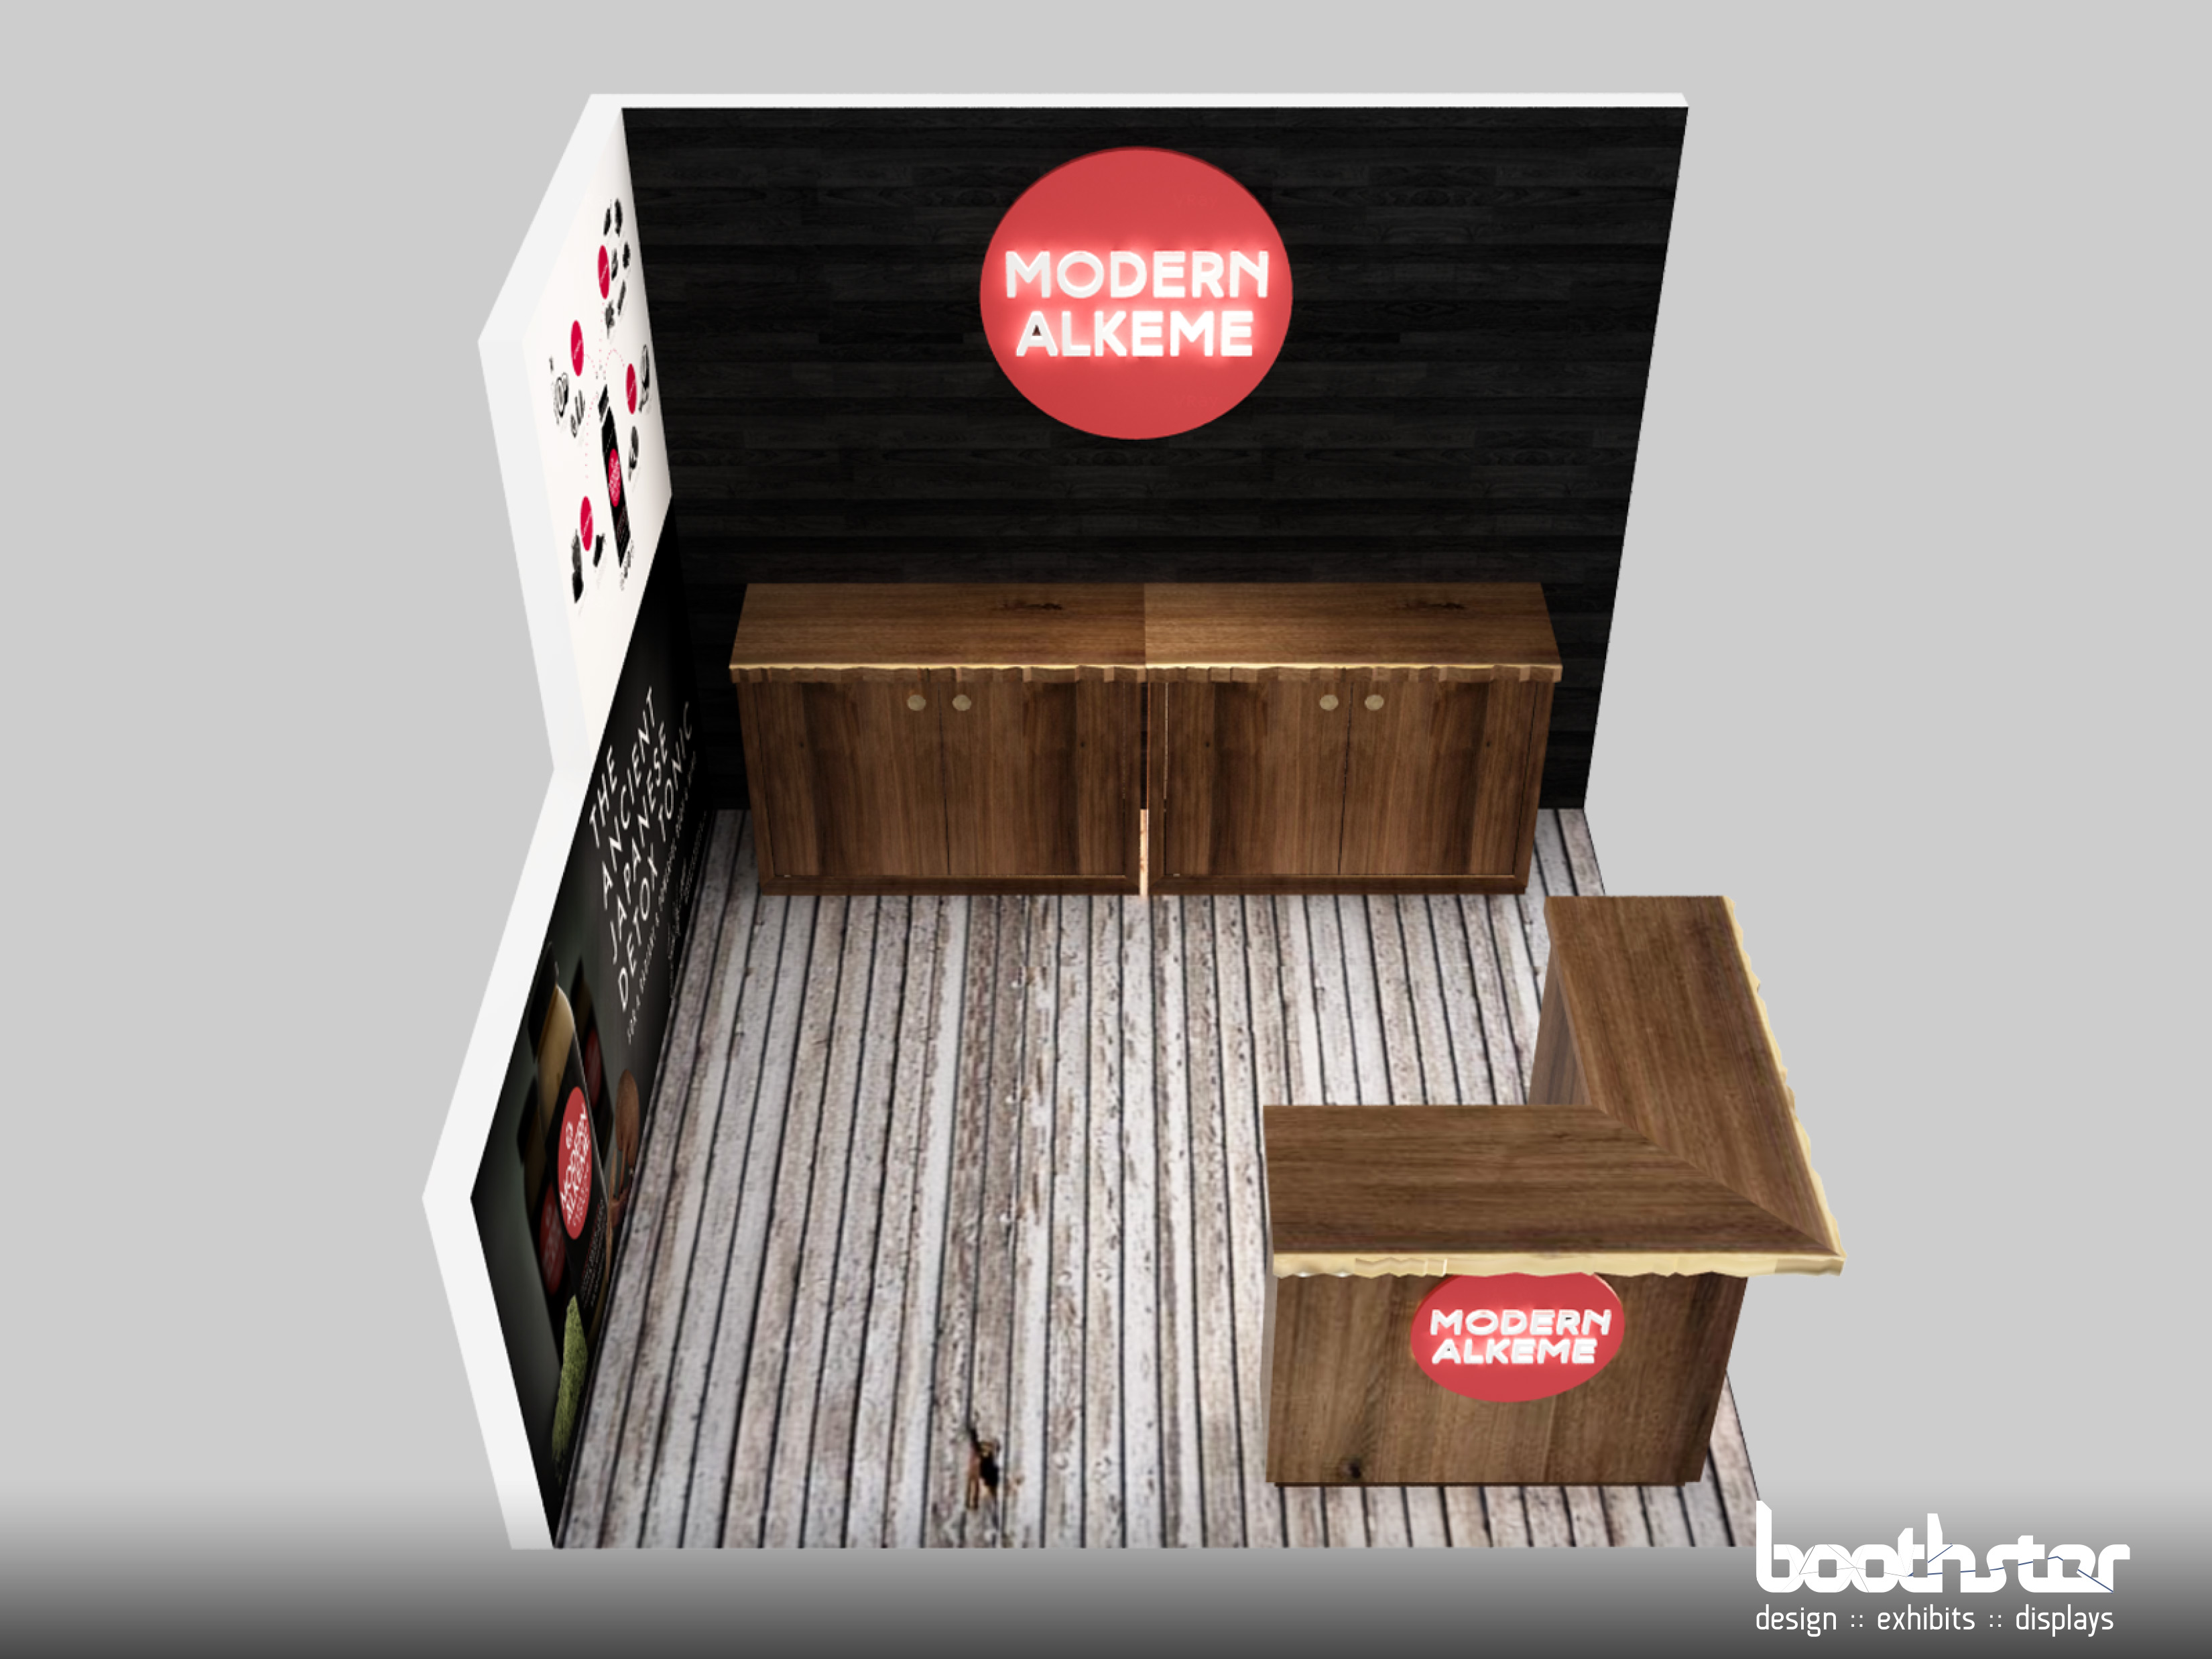 Tradeshow Booth Design for Modern Alkeme 2018